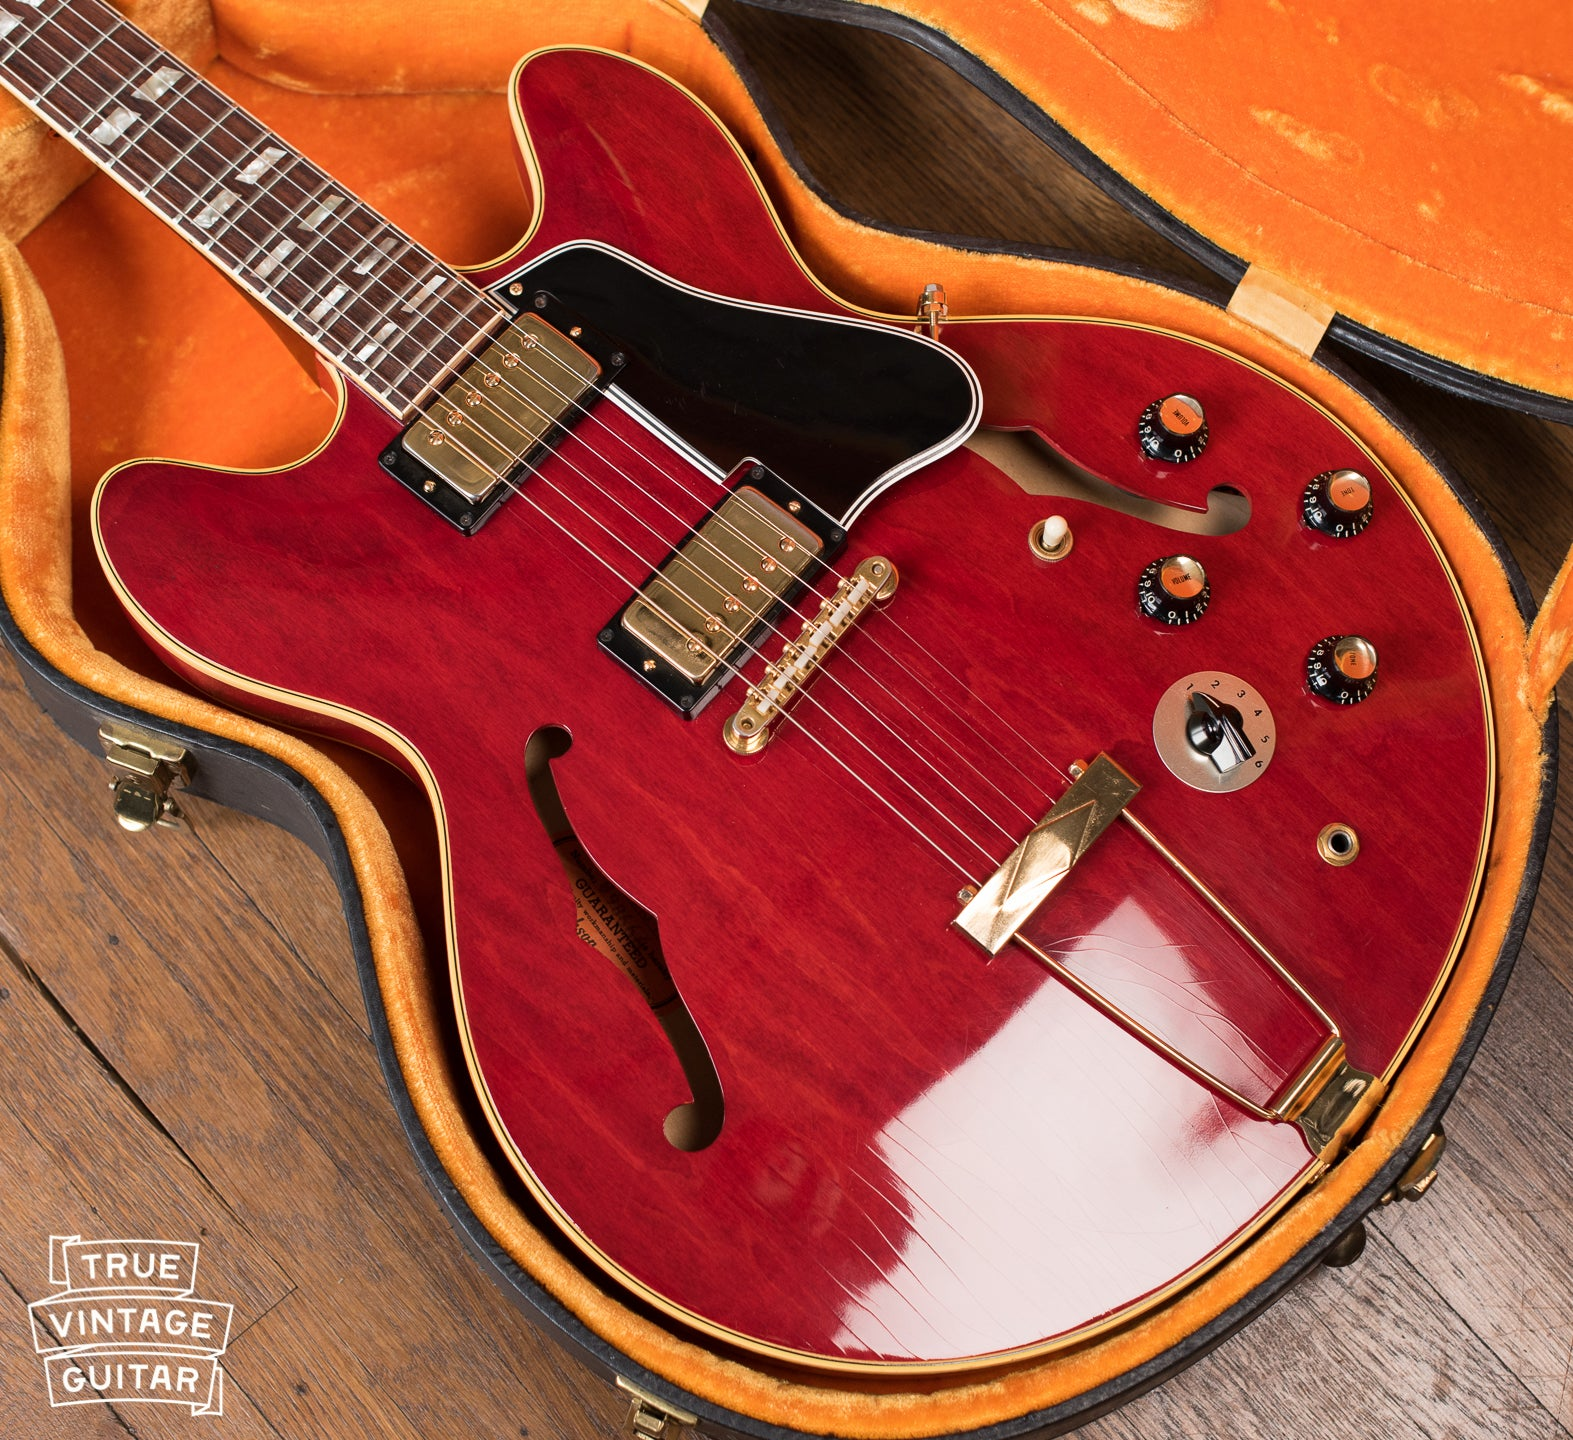 Gibson ES-345 1967 guitar Cherry Red with gold parts with Stereo output and Varitone switch